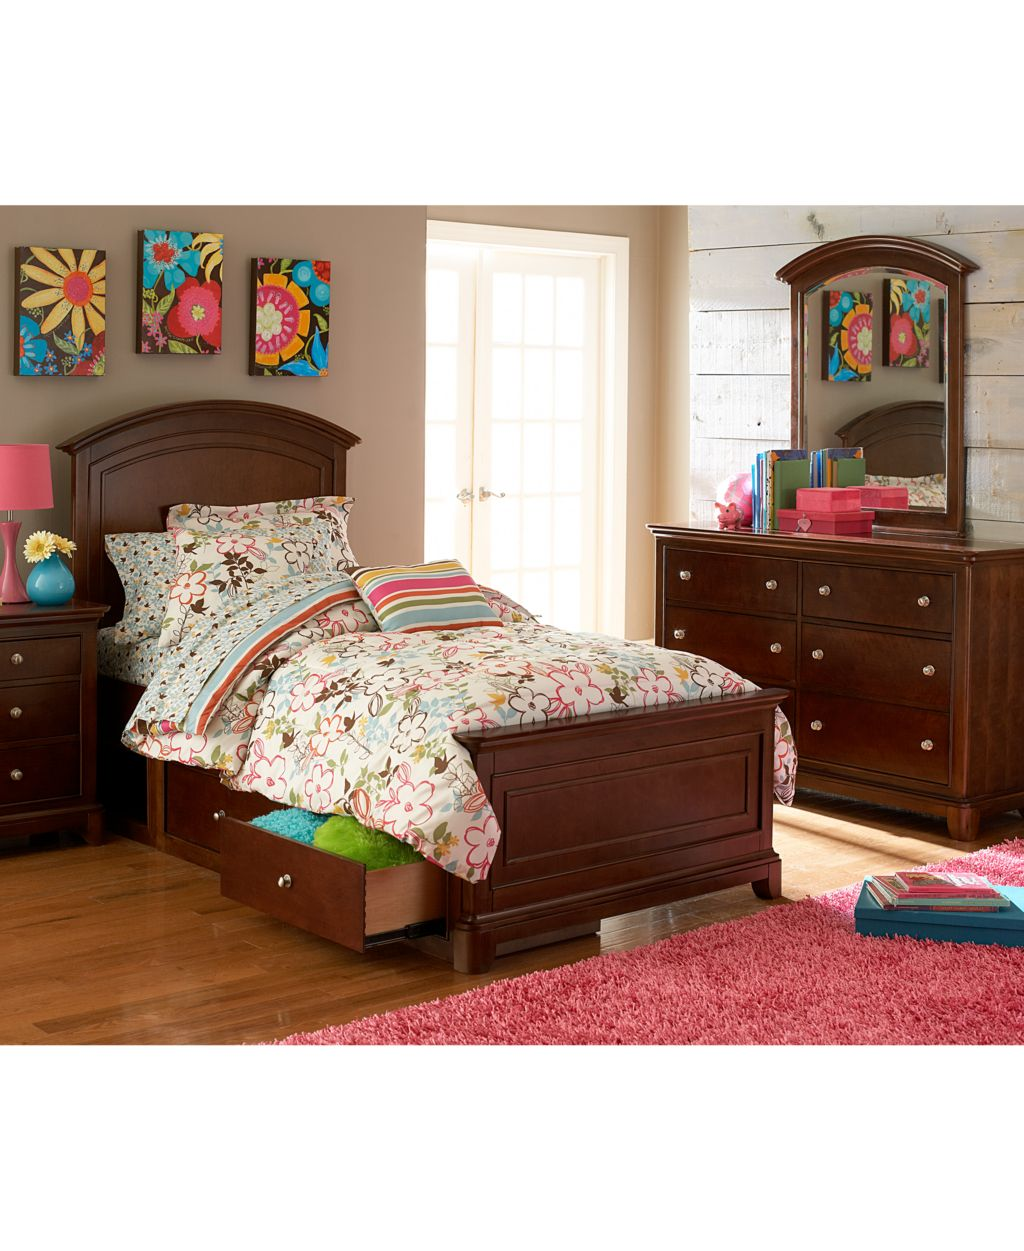 Irvine kids bedroom furniture desk chair latest top rated for Best rated bedroom furniture